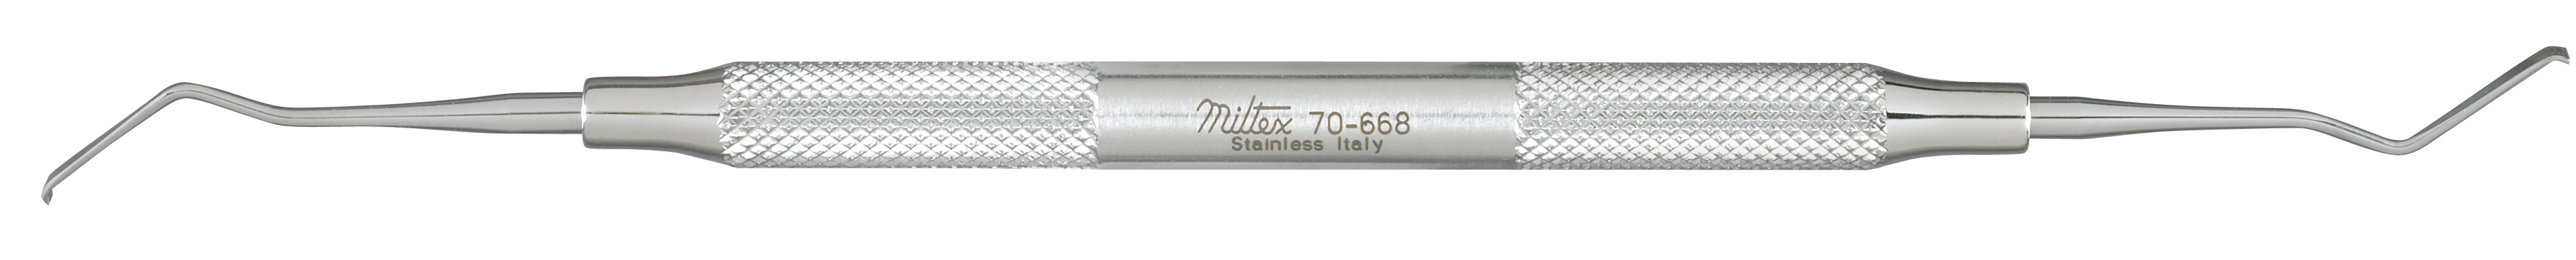 gf6-scaler-wide-handle-70-668-miltex.jpg